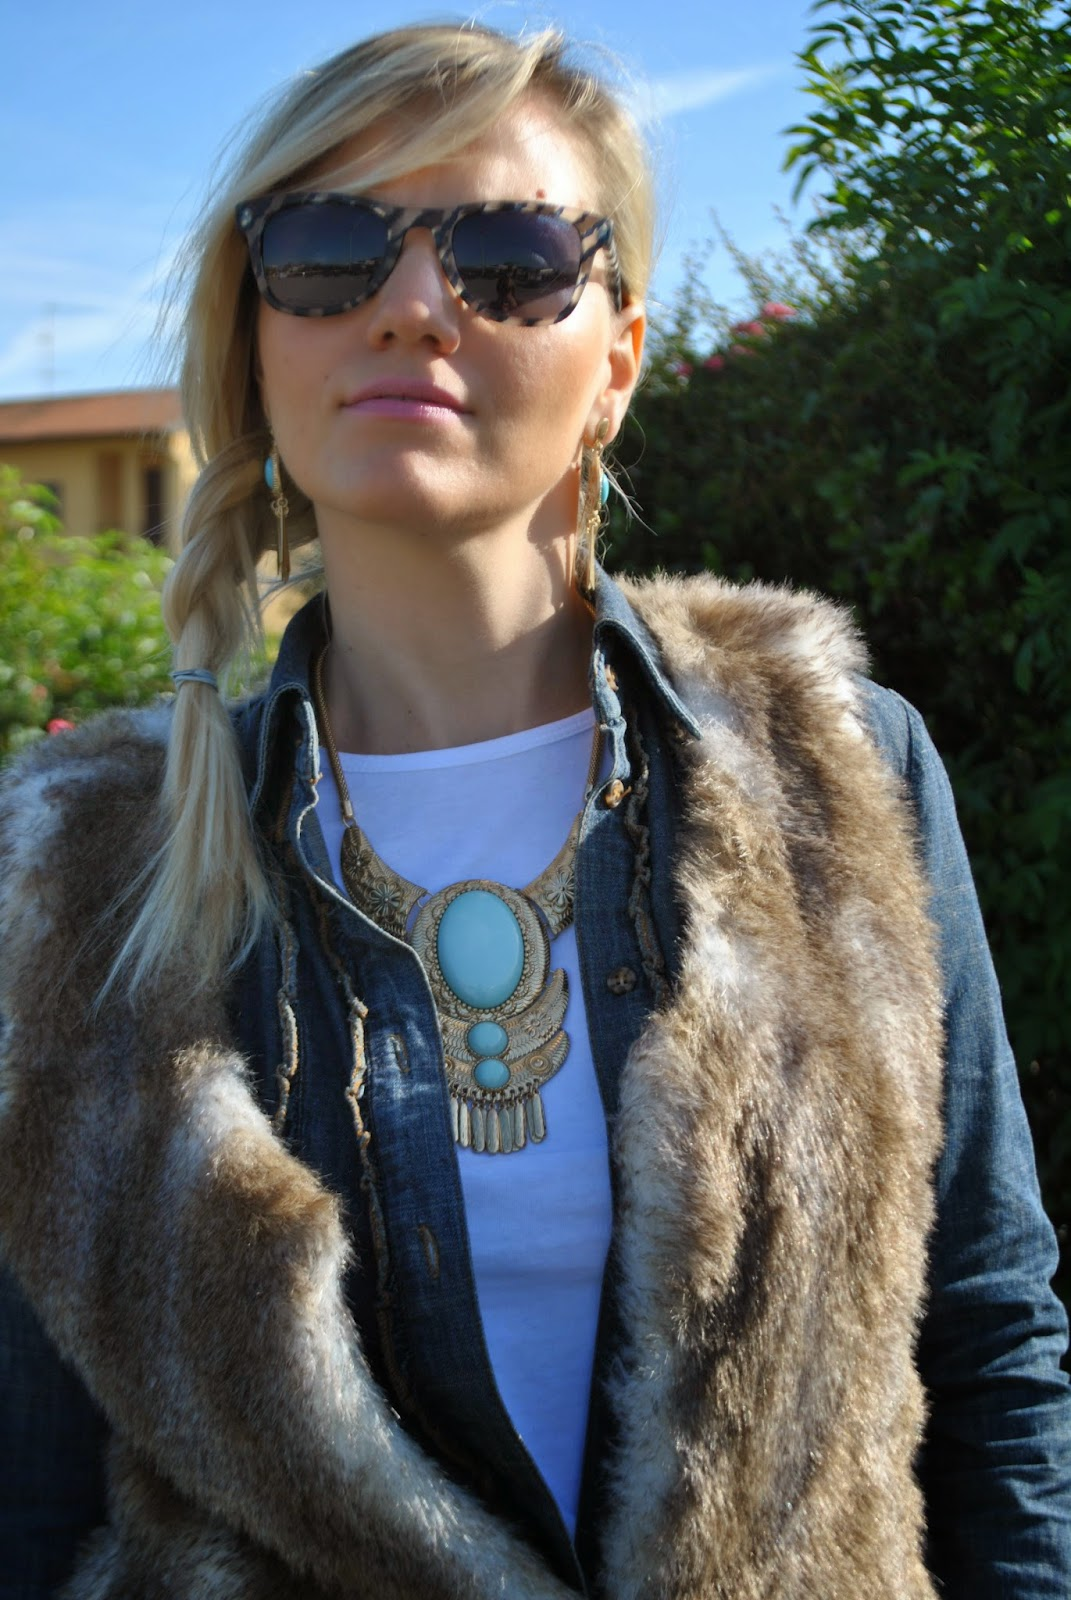 outfit autunnali casual outfit jeans camicia in denim cuissardes e  gilet in ecopelliccia orecchini e collana etnica majique london hoe to wear cuissardes how to wear faux fur vest oautumnal outfit autumnal casual outfit mariafelicia magno mariafelicia magno fashion blogger colorblock by felym fashion blogger italiane fashion bloggers italy italian girl ragazze italiane fashion blogger bionde blonde girls